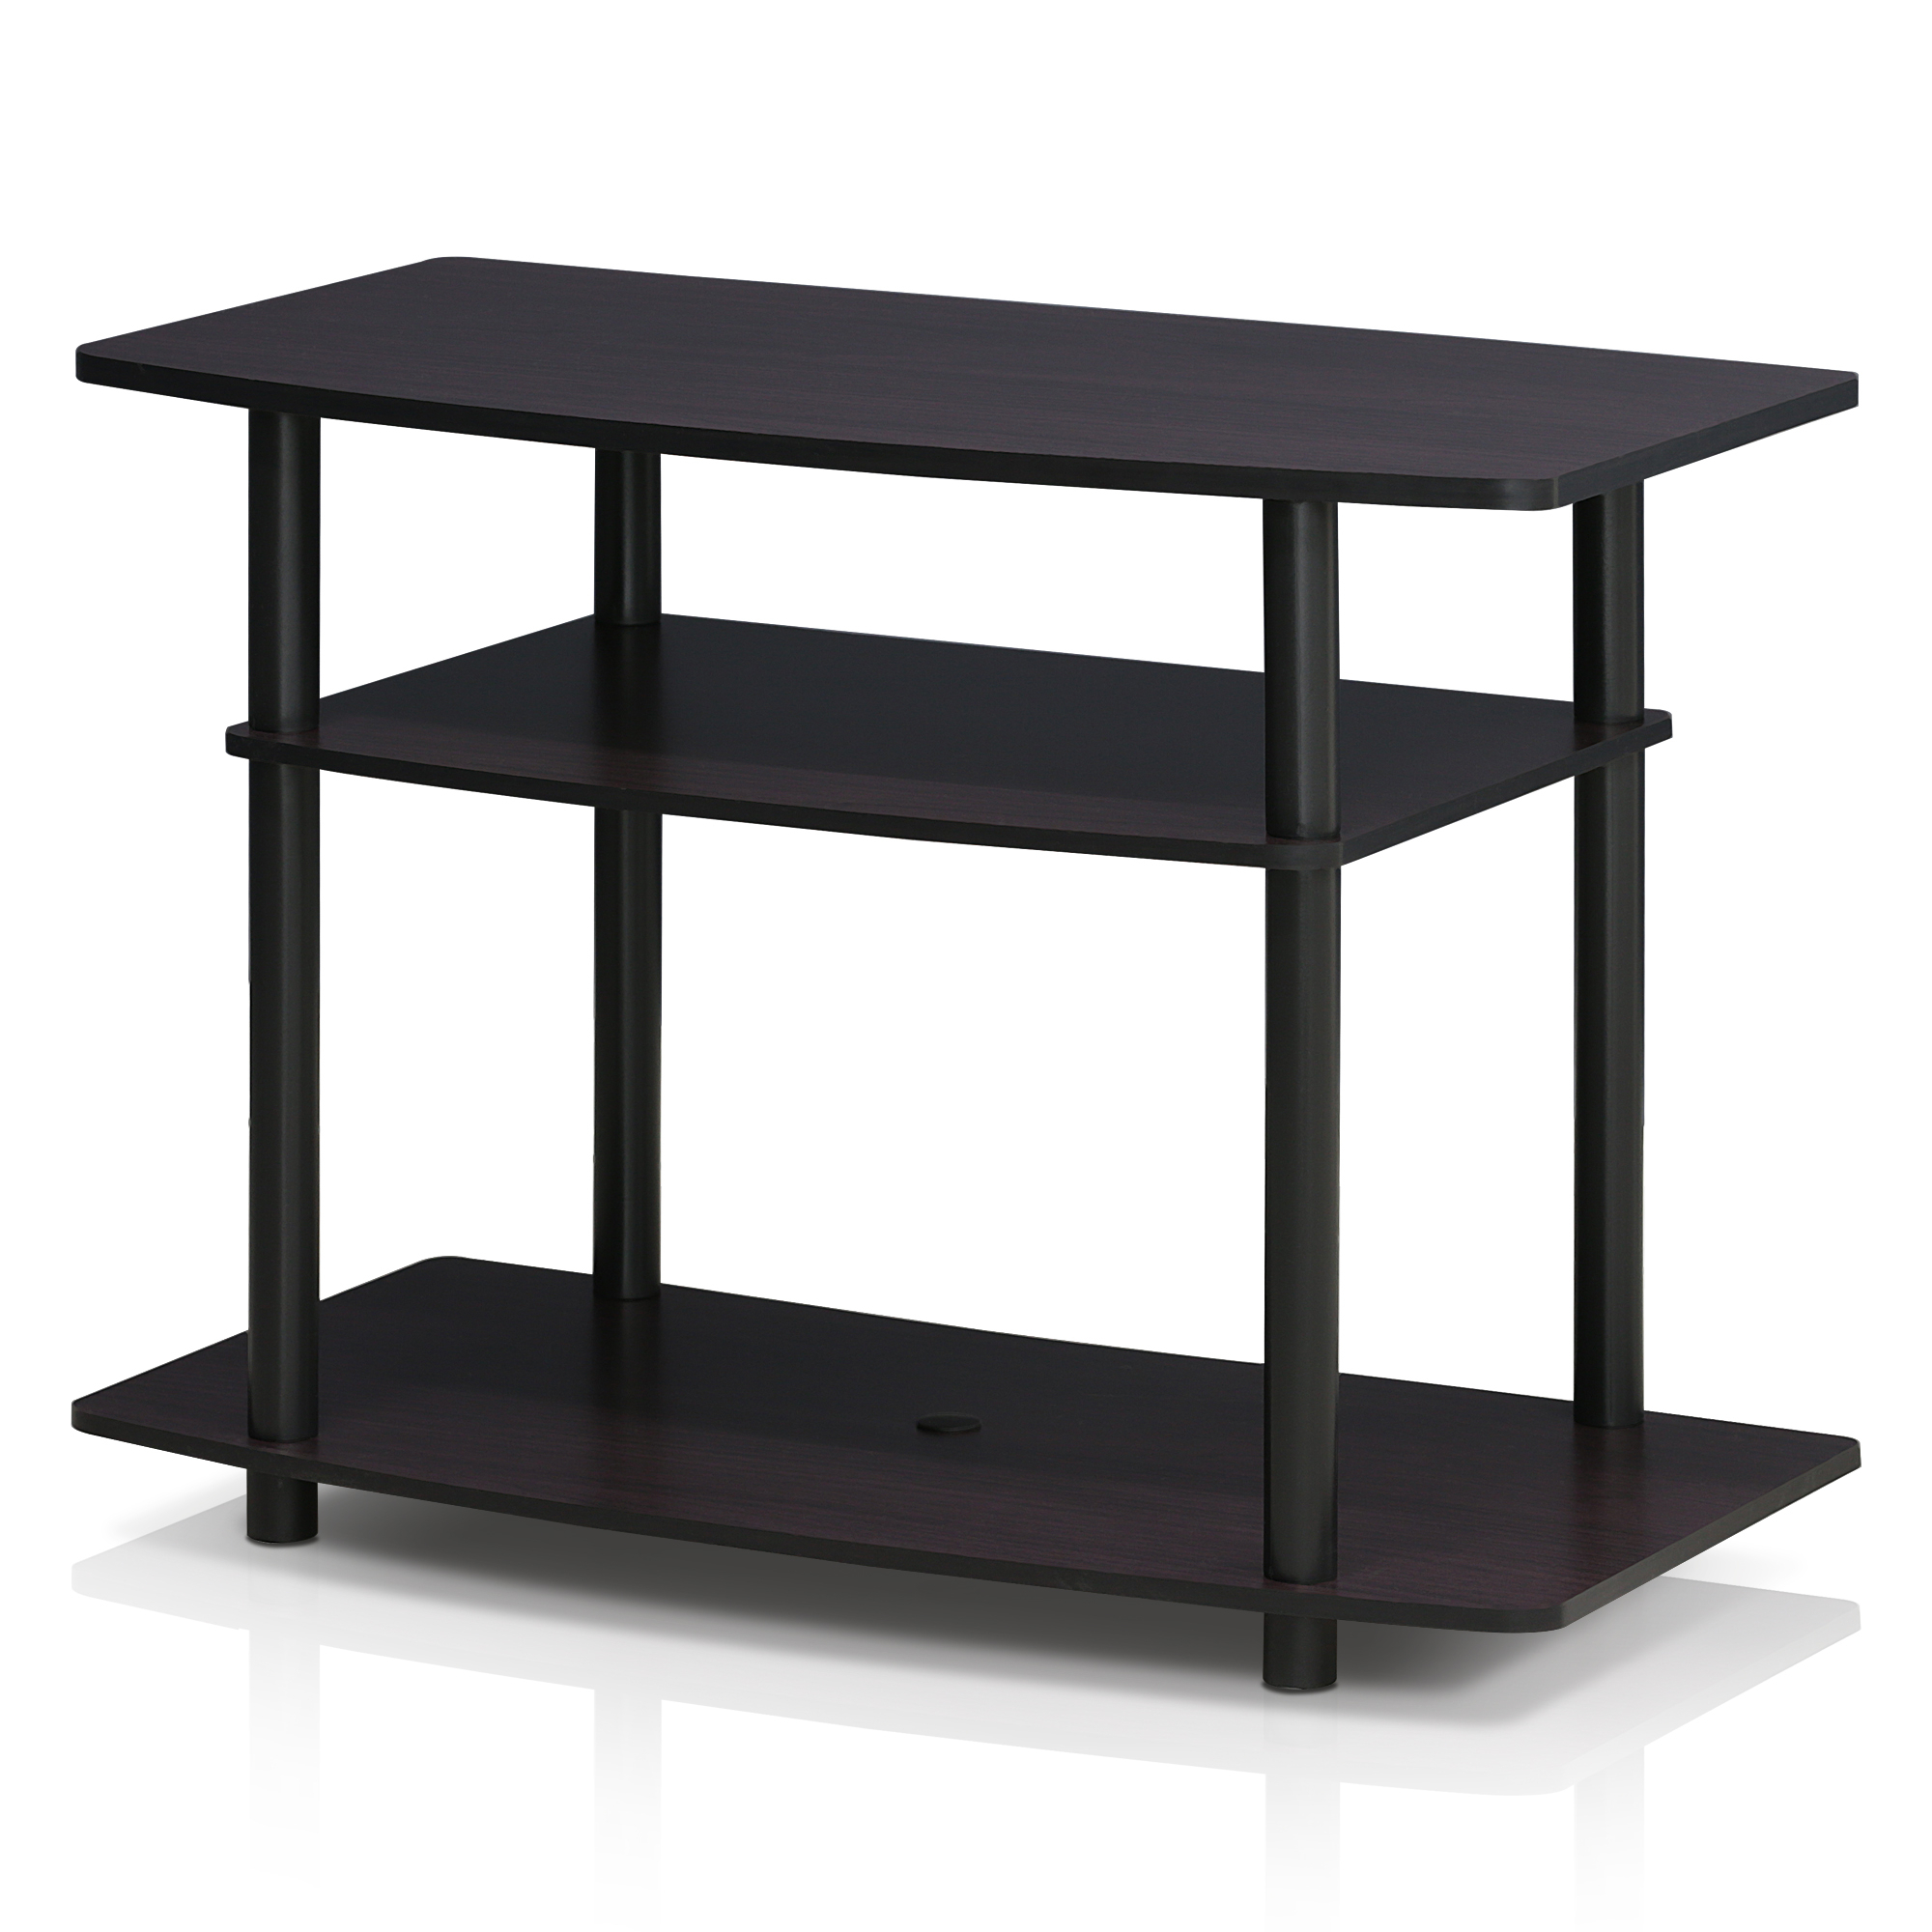 Furinno 13192dwn Turn N Tube No Tools 3 Tier Tv Stands Regarding Furinno 2 Tier Elevated Tv Stands (View 14 of 20)